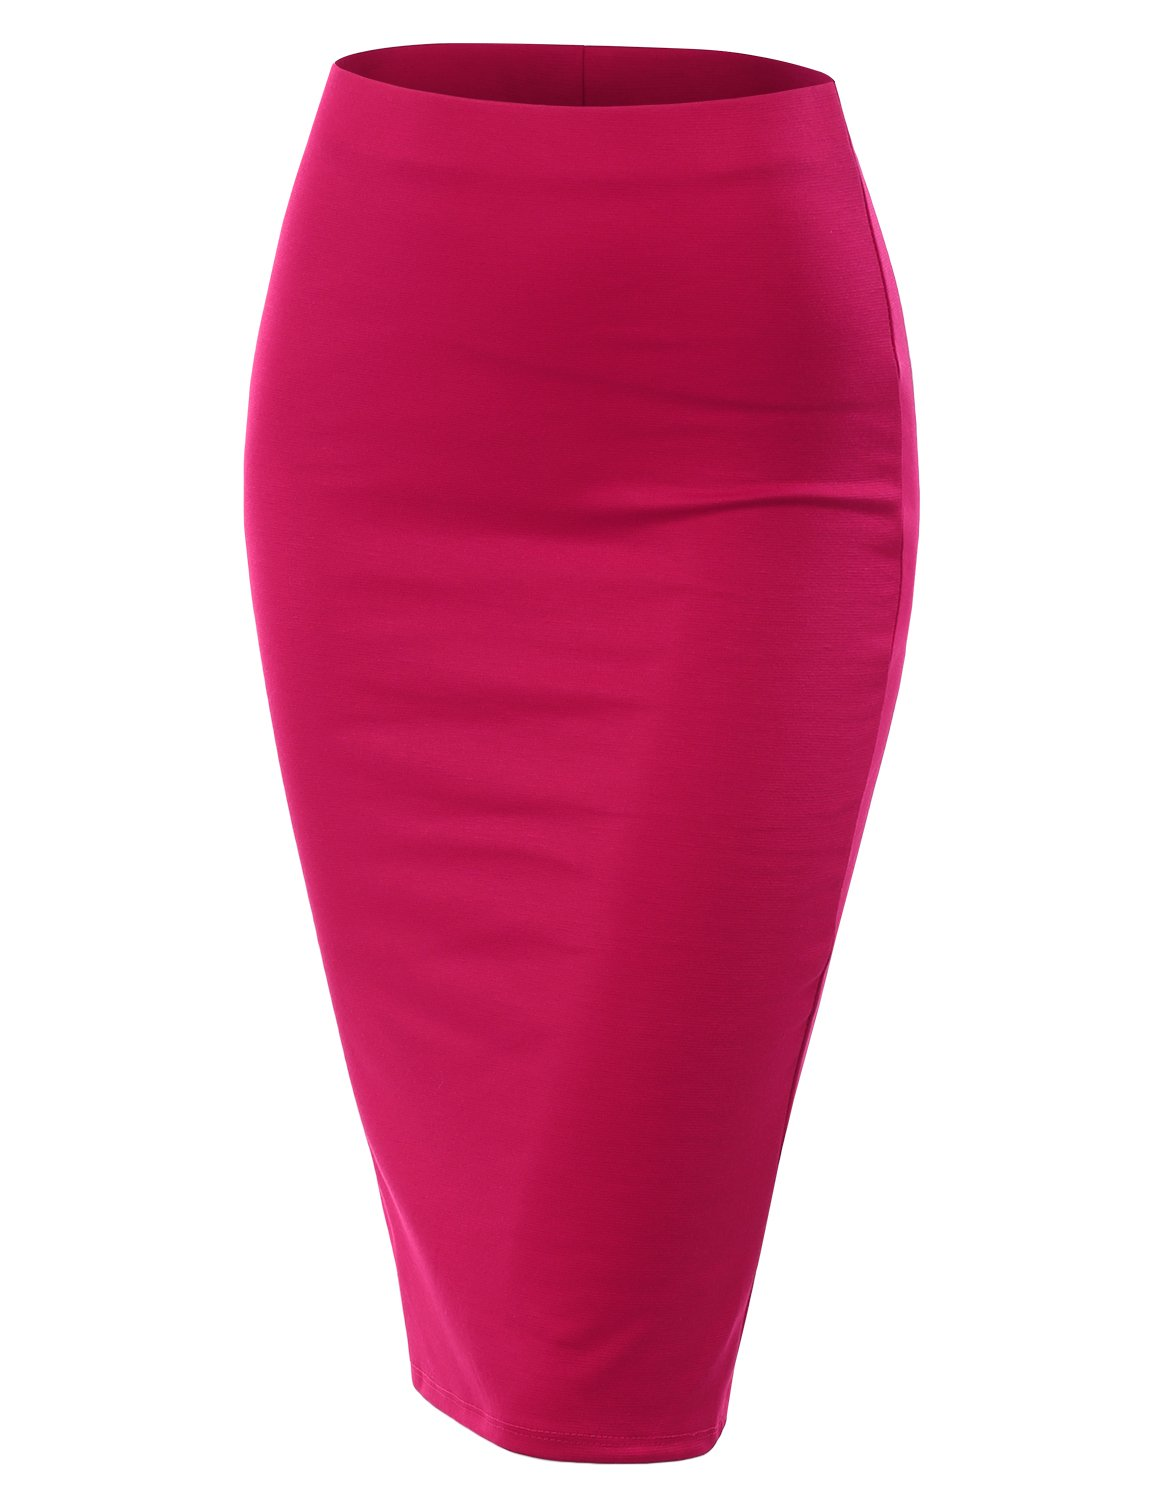 CLOVERY Women's Lighweight Fabric Office Wear Premium Hyper Stretch Scuba Oversize Skirt Fuchsia XL Plus Size